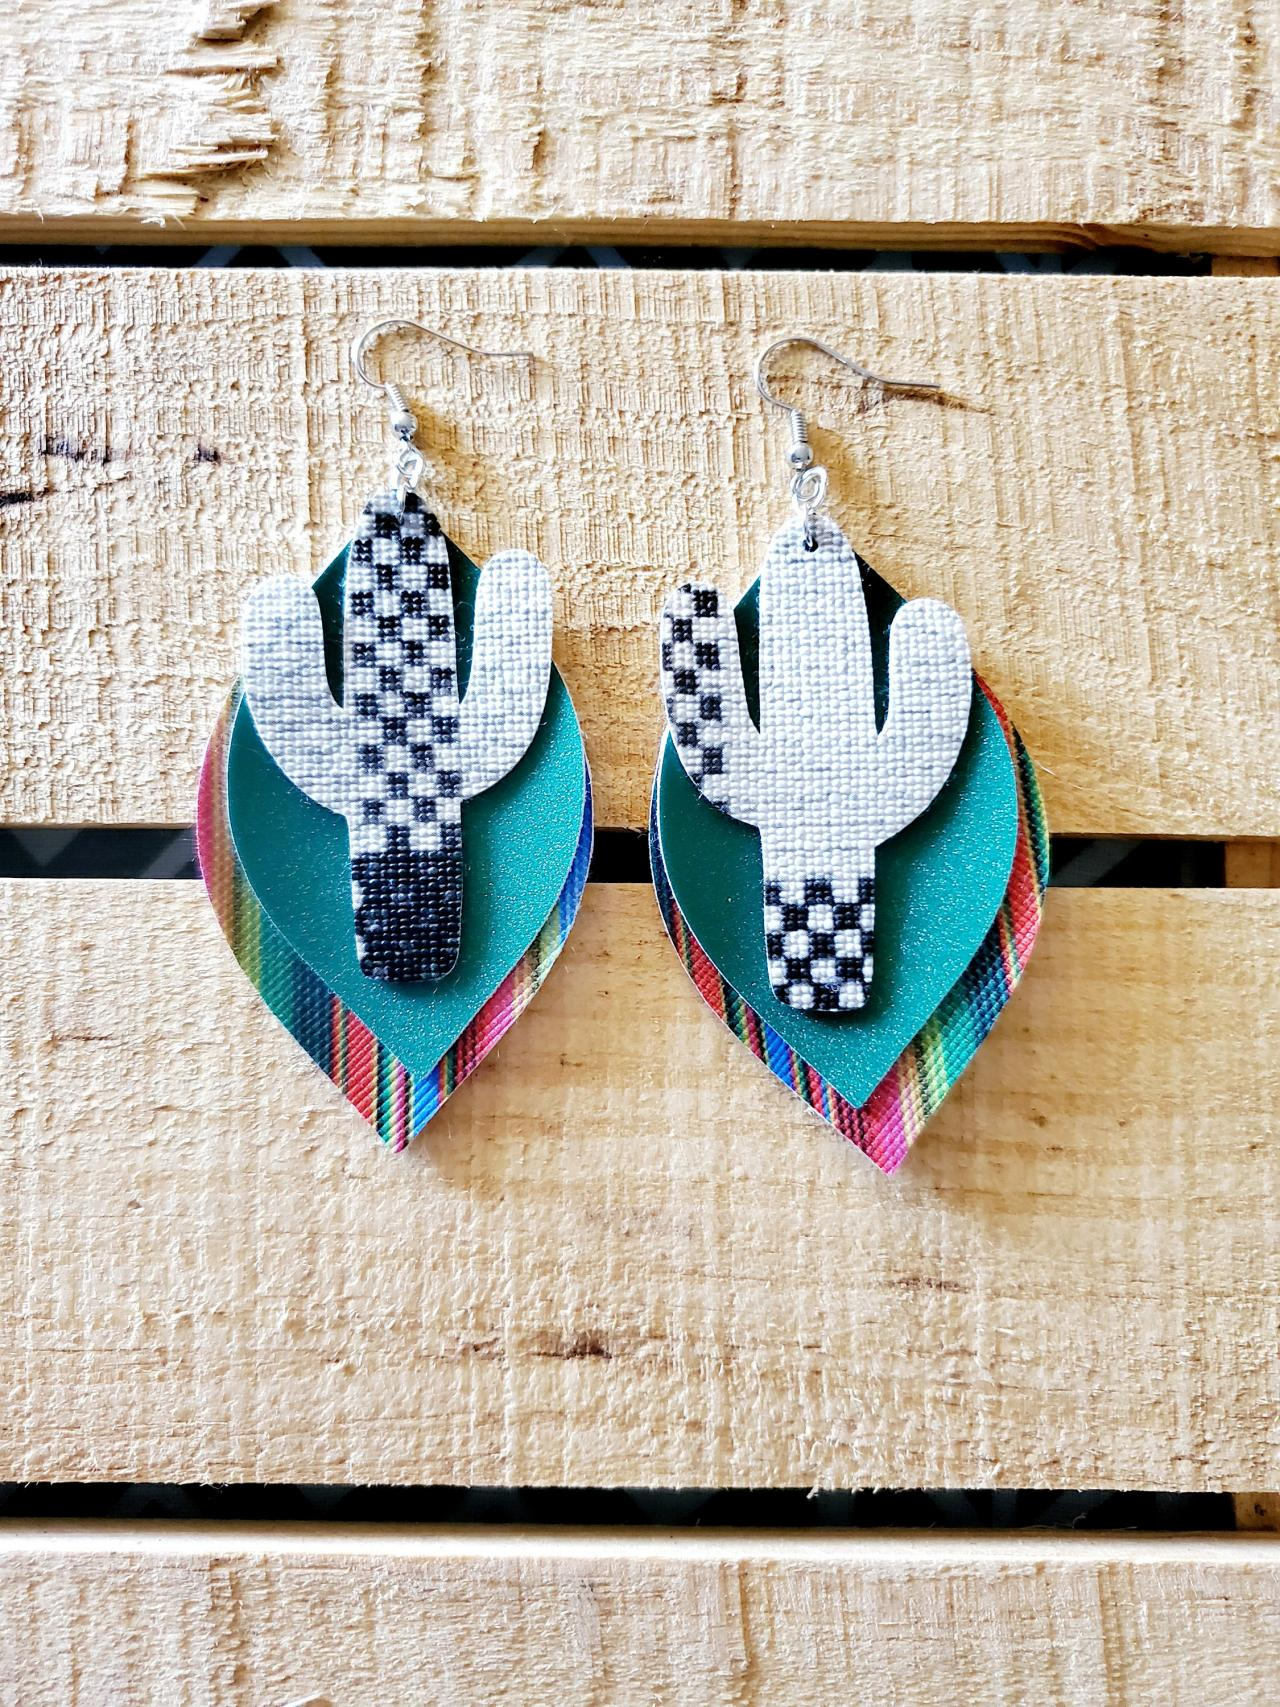 Aztec Leather Earrings, Serape Leather Earrings, Tribal Earrings, Boho Earrings, Bohemian Jewelry, Tribal Jewelry, Fine Glitter Earrings